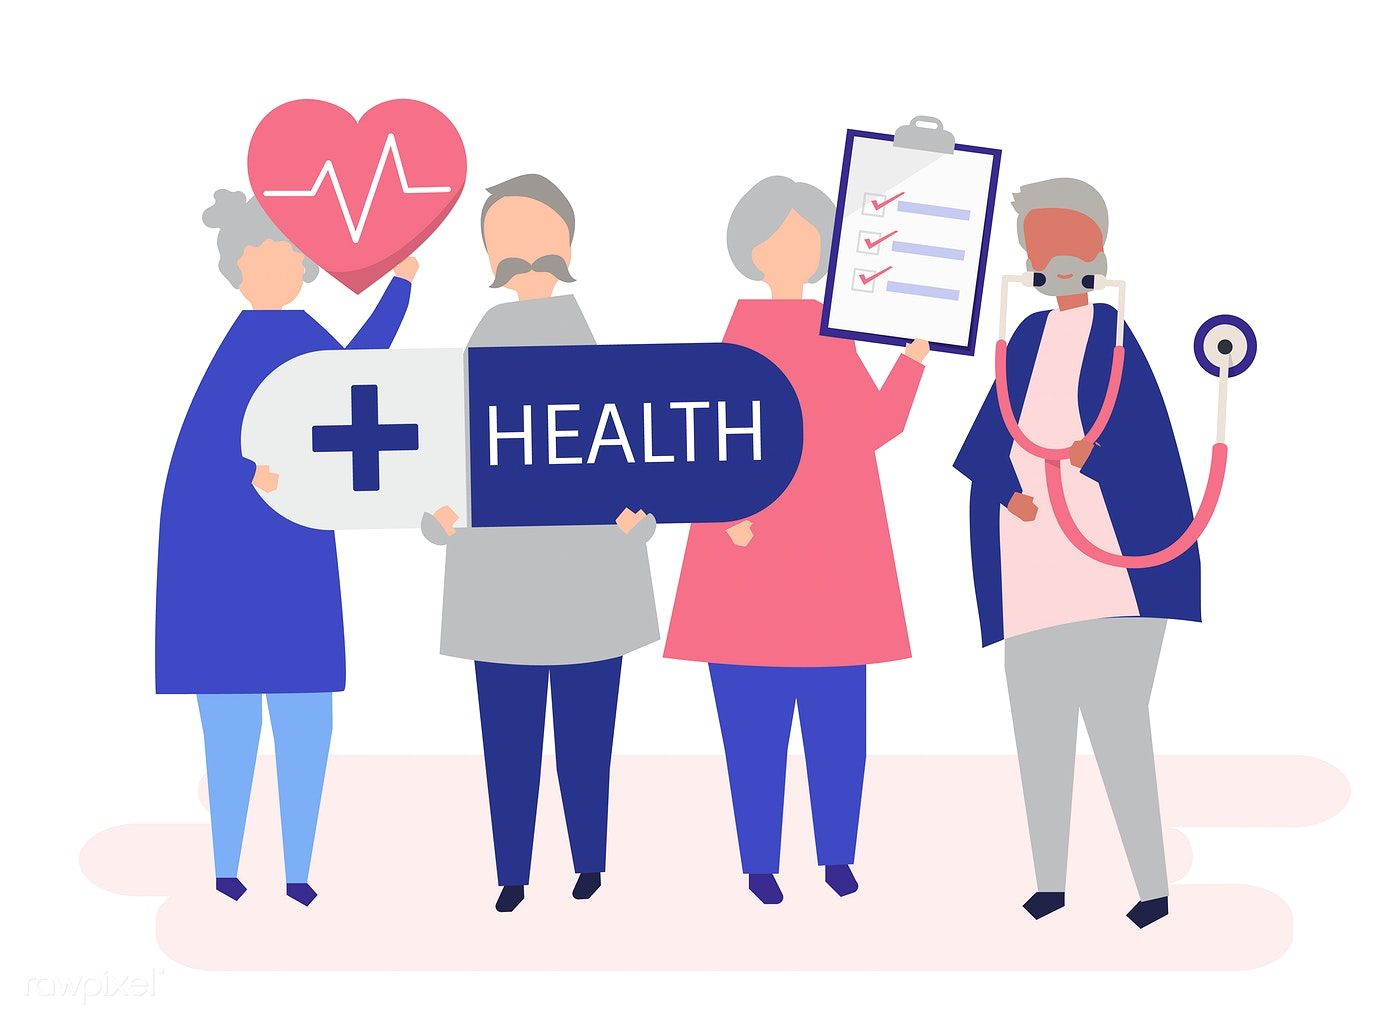 Character illustration of elderly people holding health